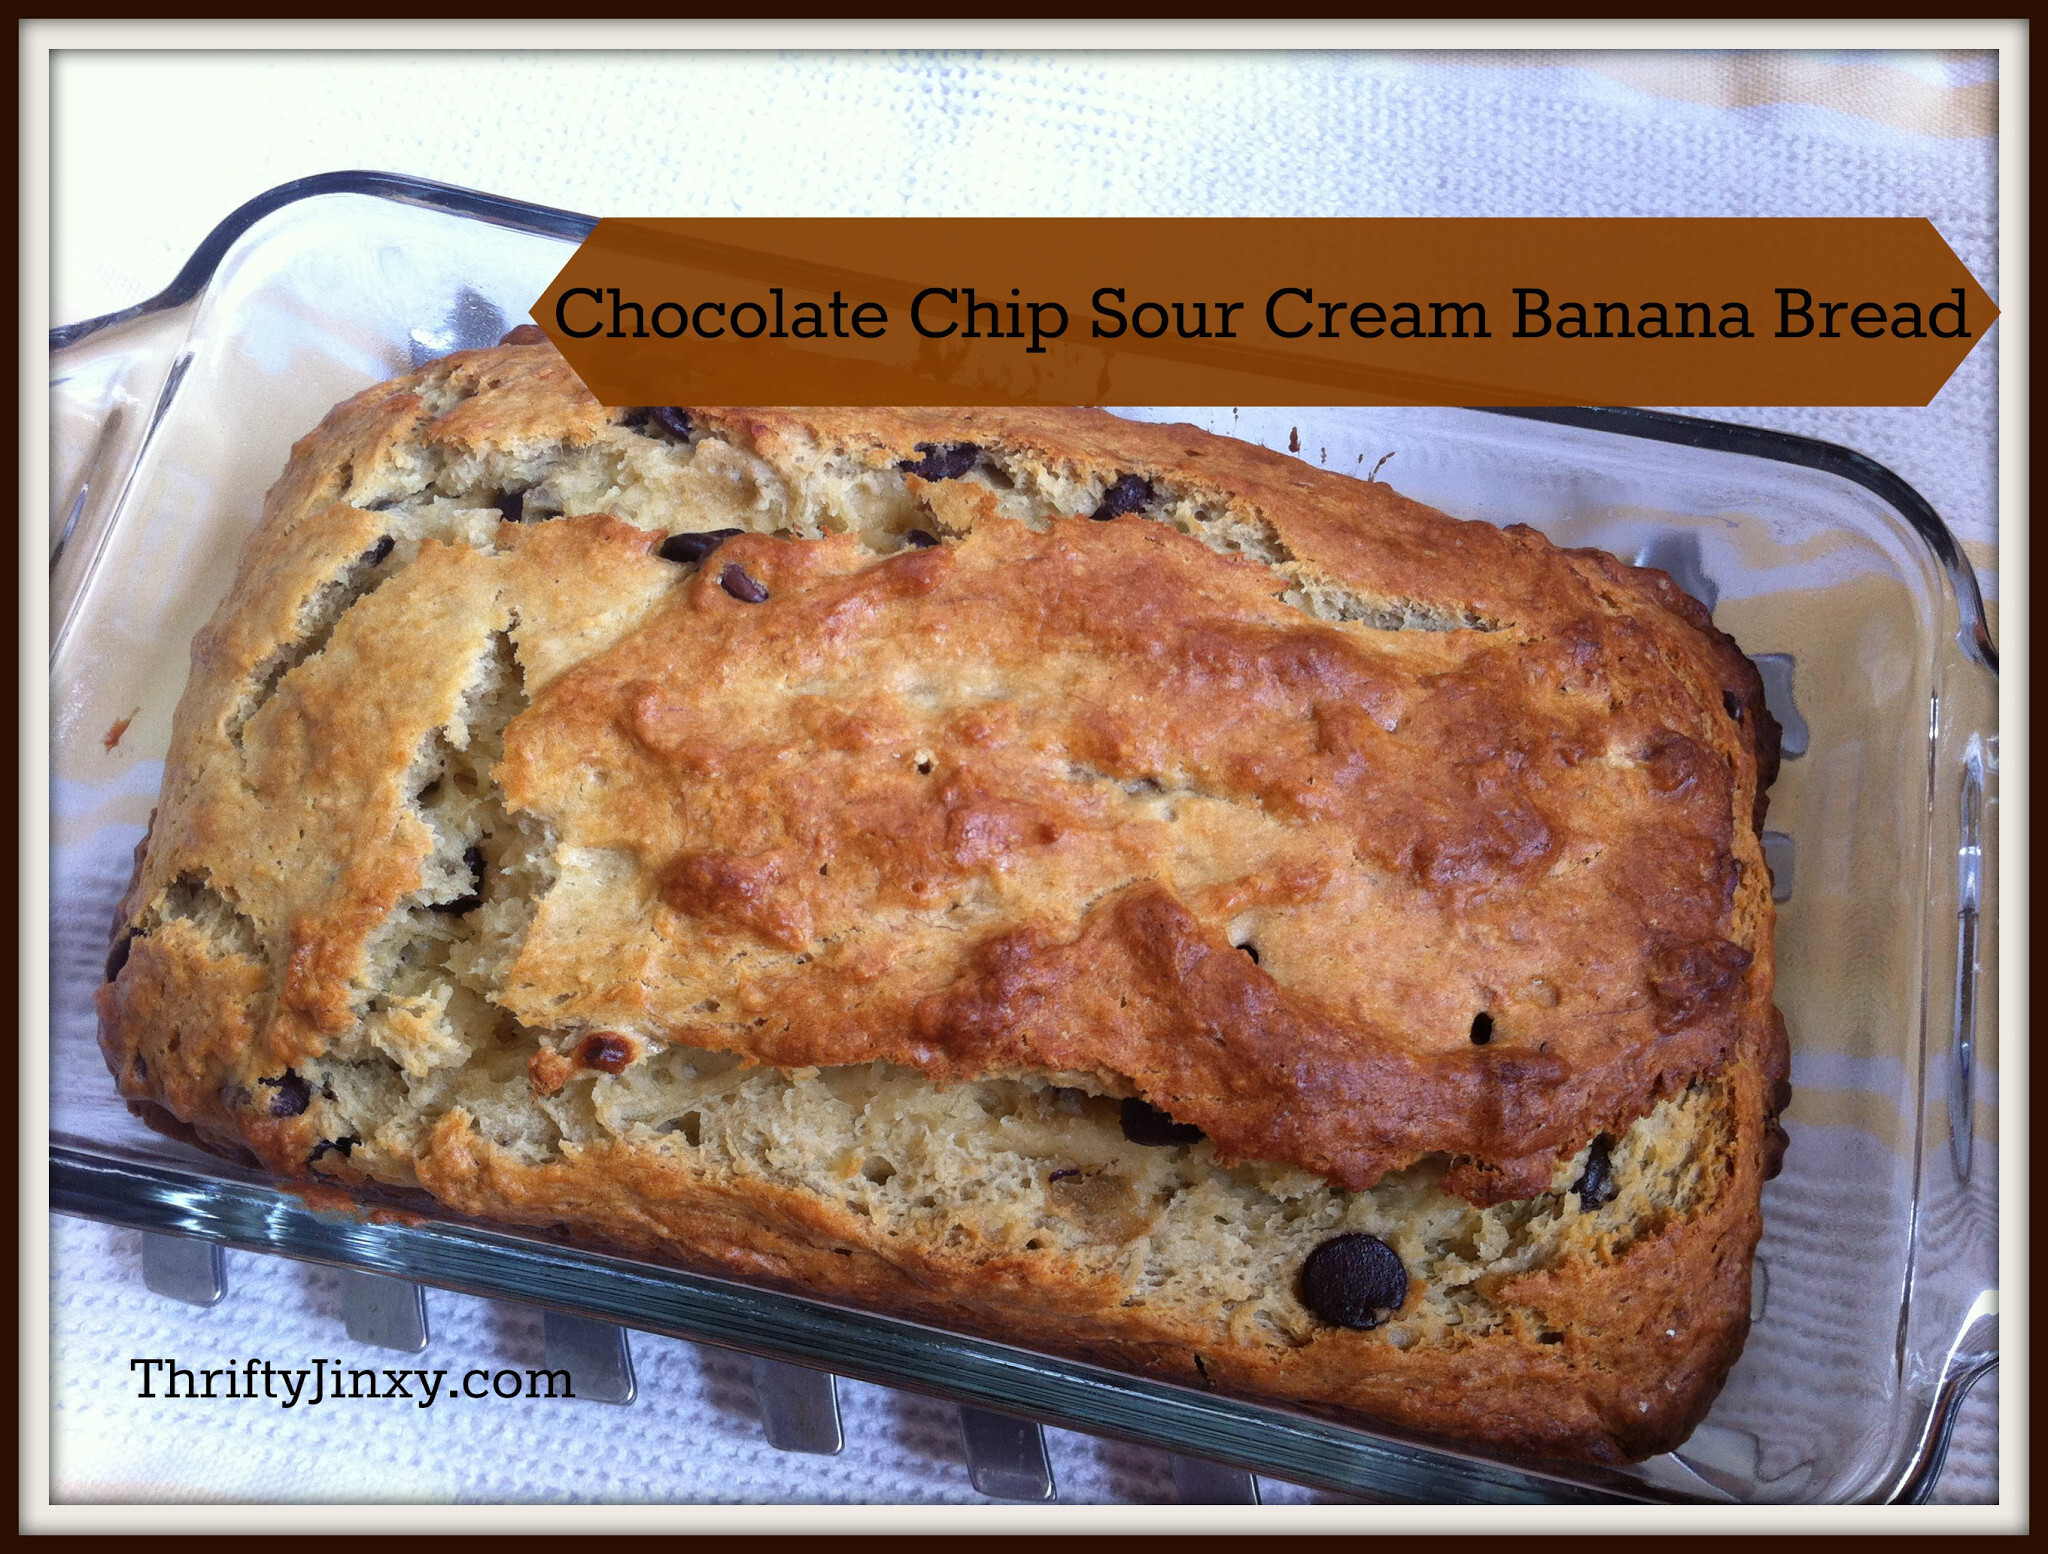 Chocolate Chip Sour Cream Banana Bread Recipe